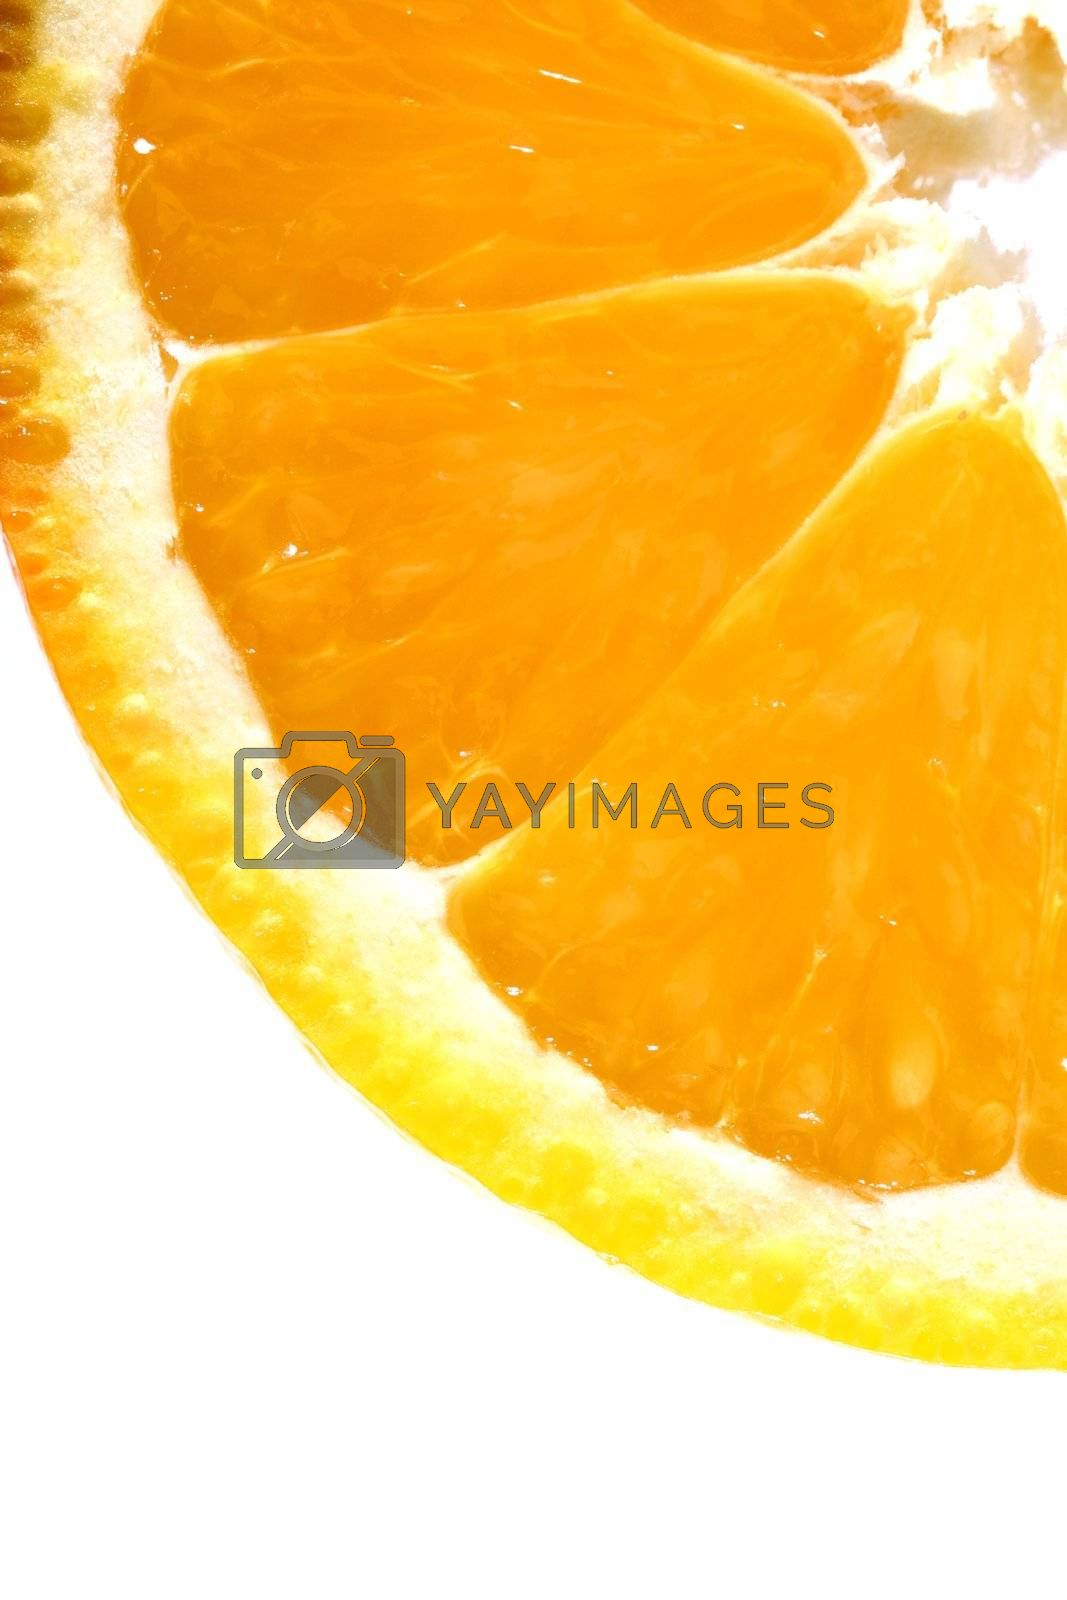 orange slice macro close up